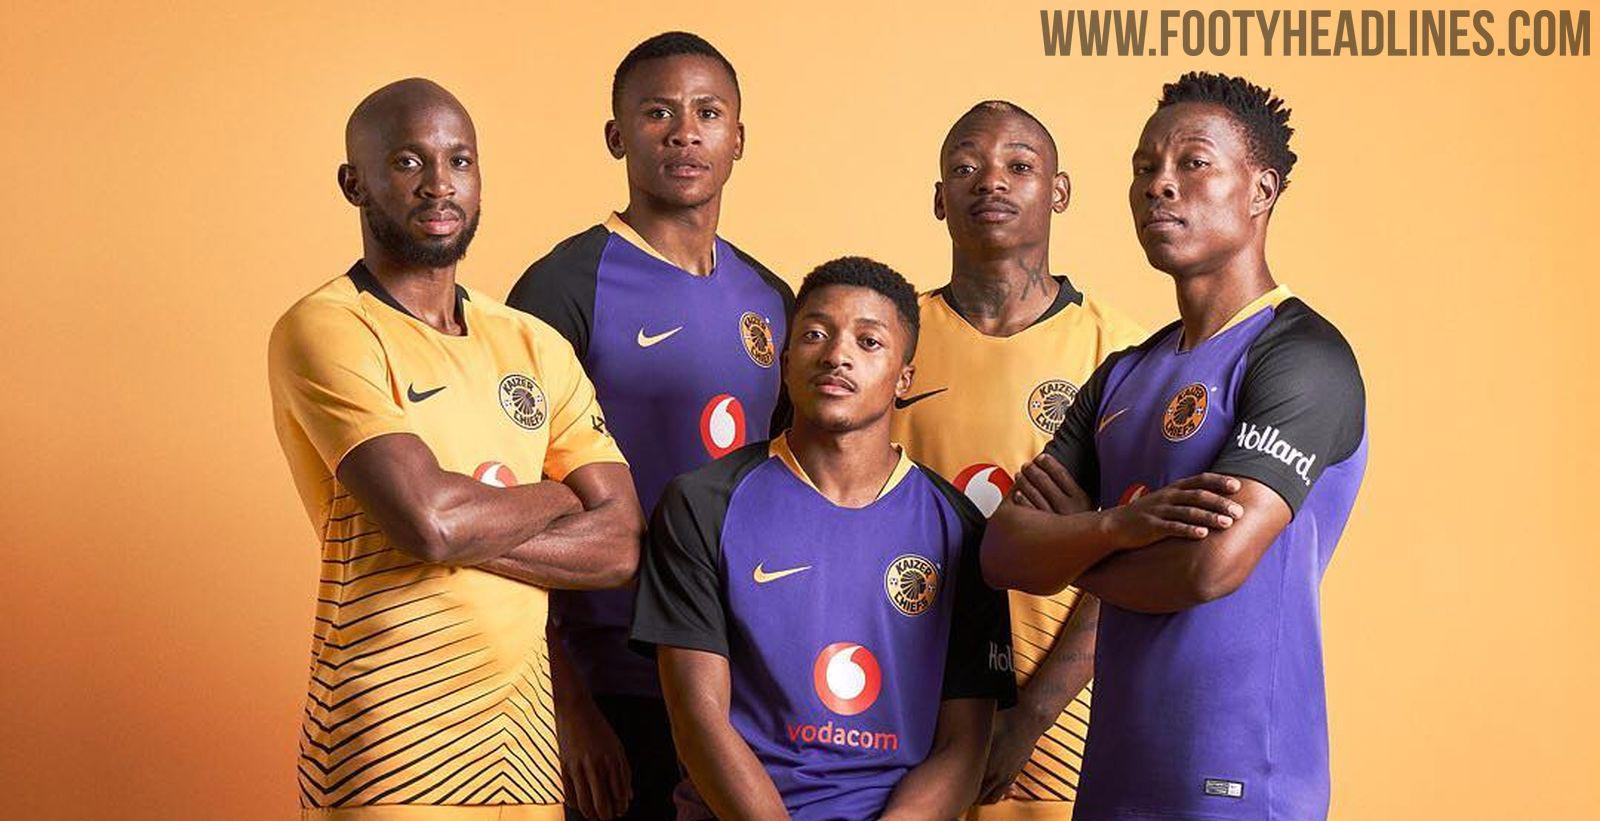 Kaizer Chiefs: Unique Nike Kaizer Chiefs 18-19 Home & Away Kits Released